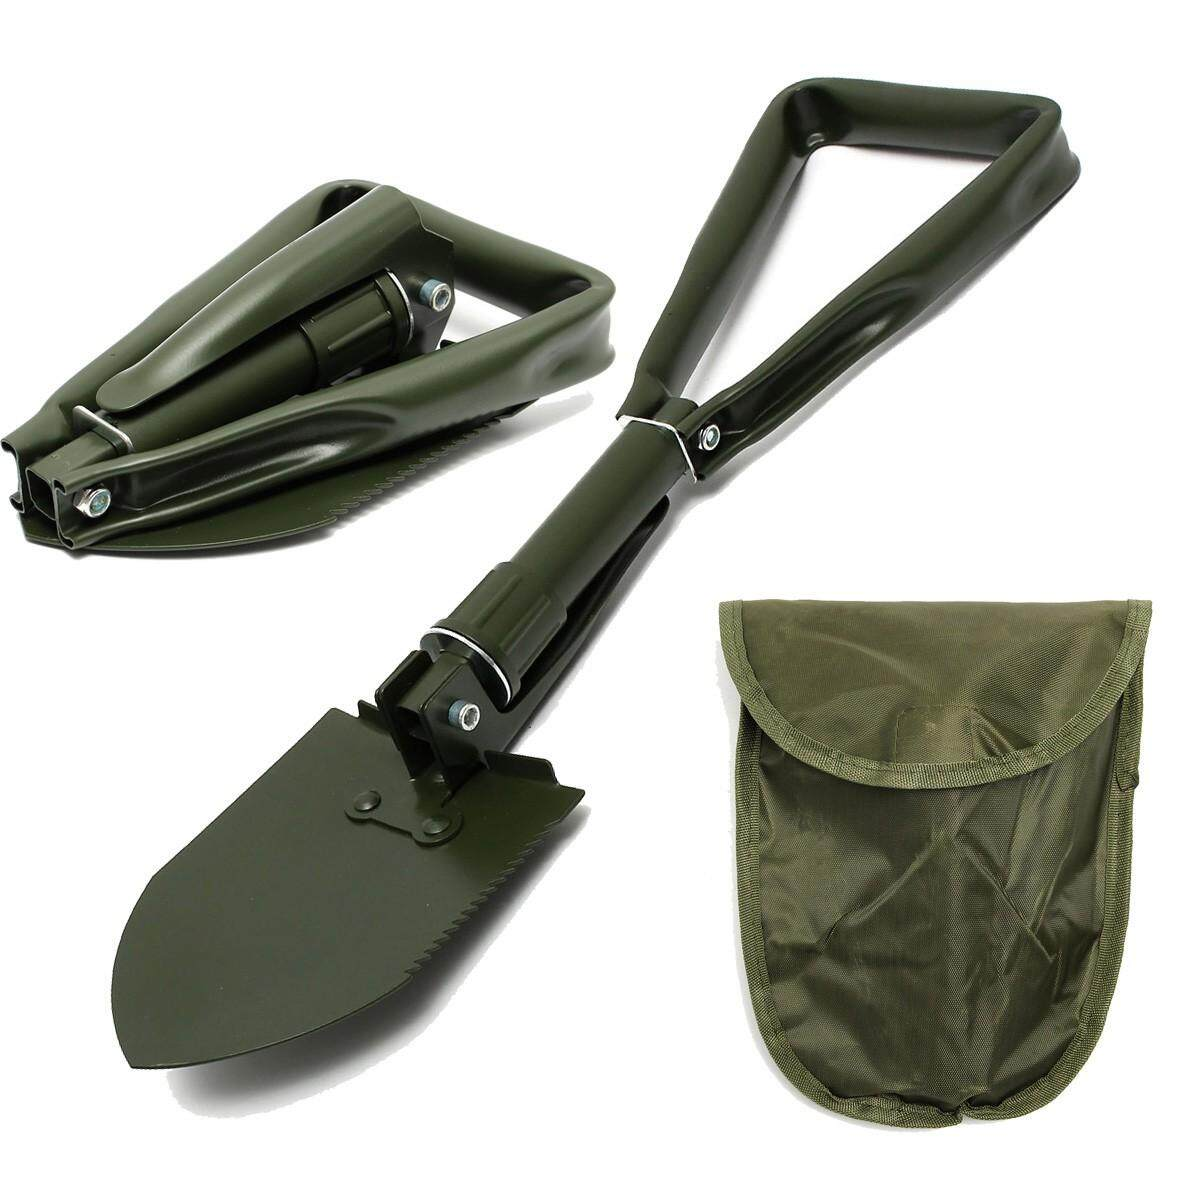 Folding Sho-vel Spa-de Metal Pick A-xe Emergency En-trenching Army Tool Car S-coop